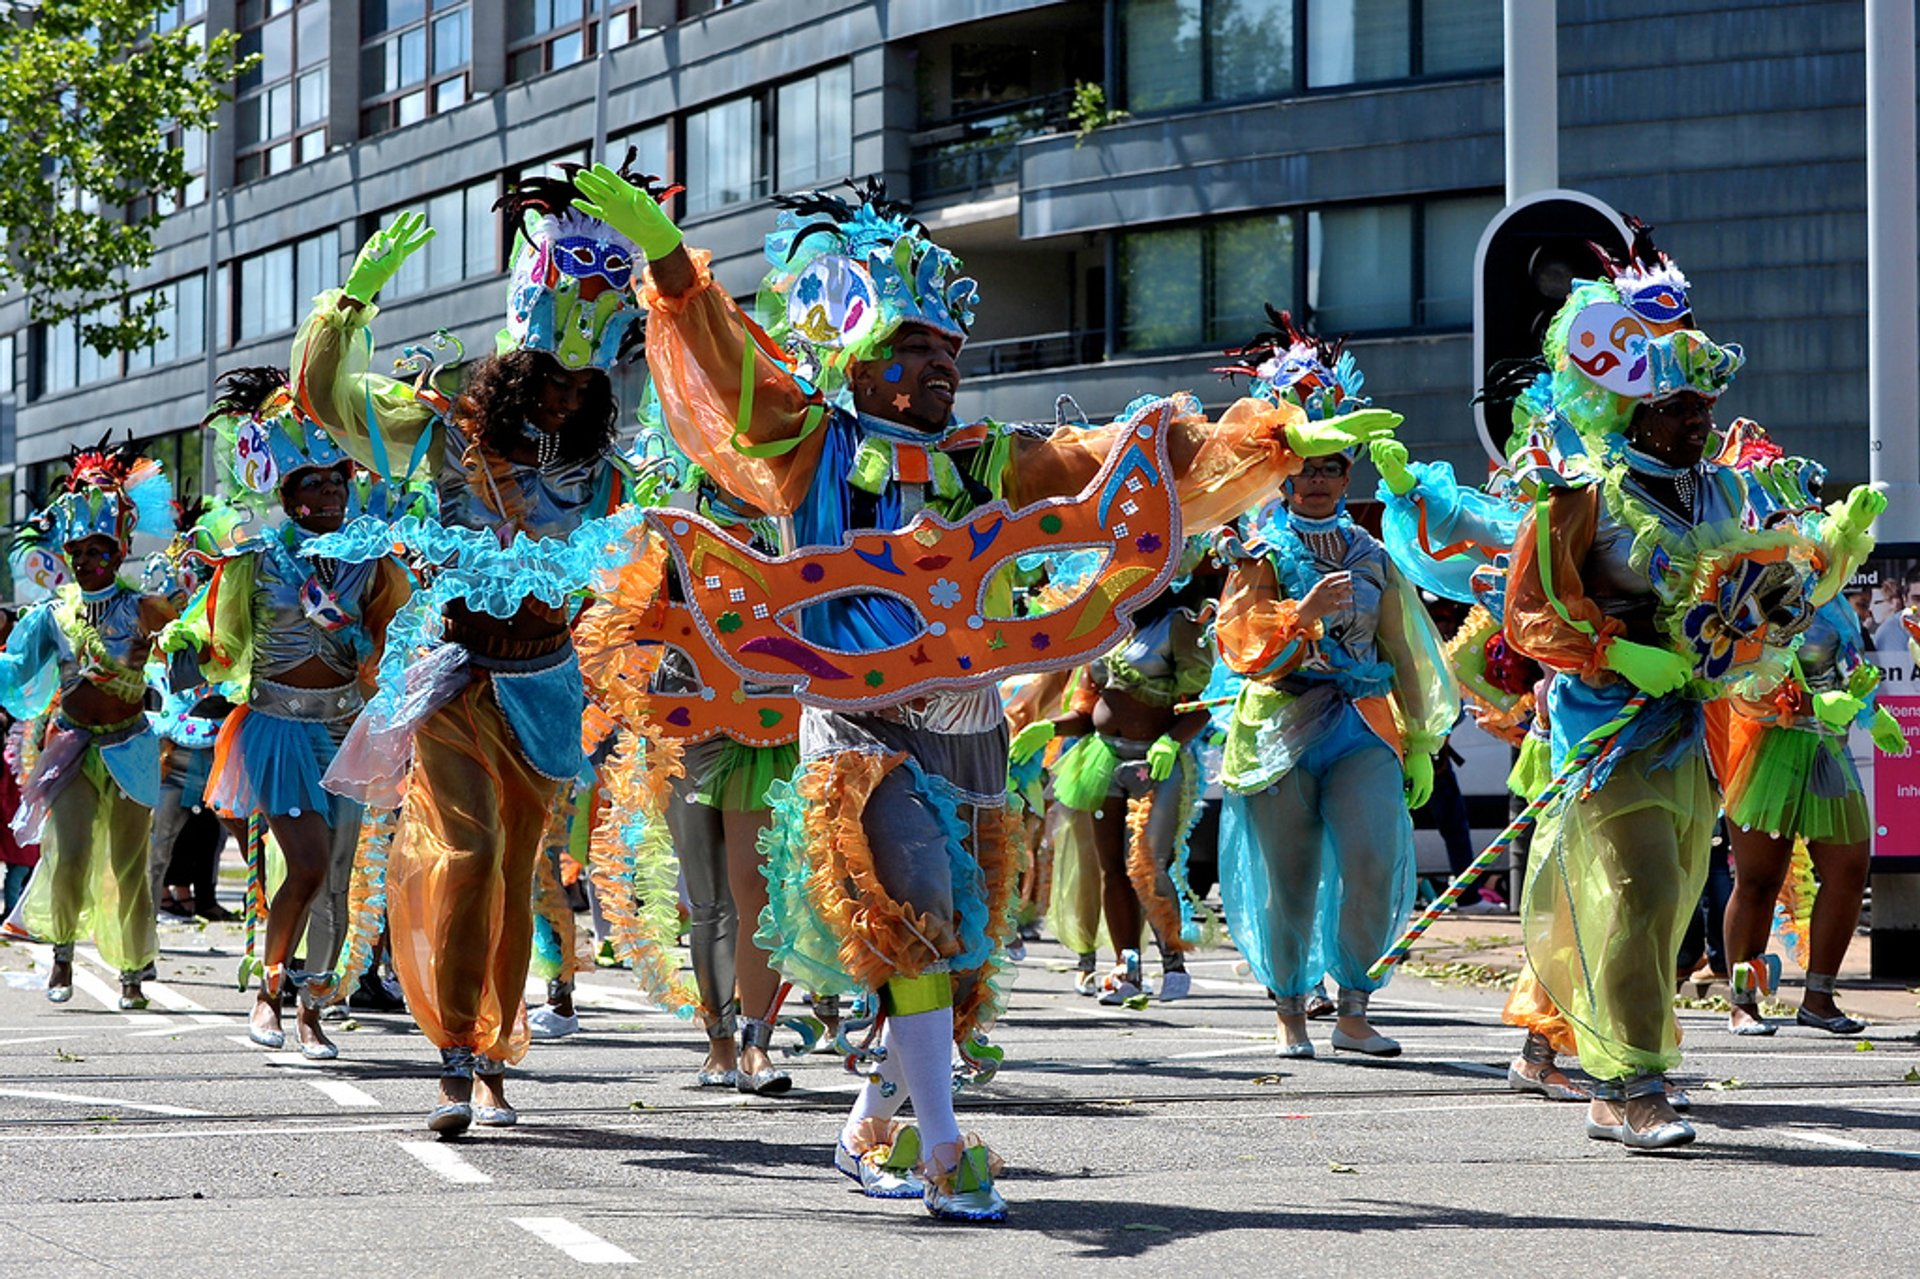 Zomercarnaval in The Netherlands 2019 - Best Time